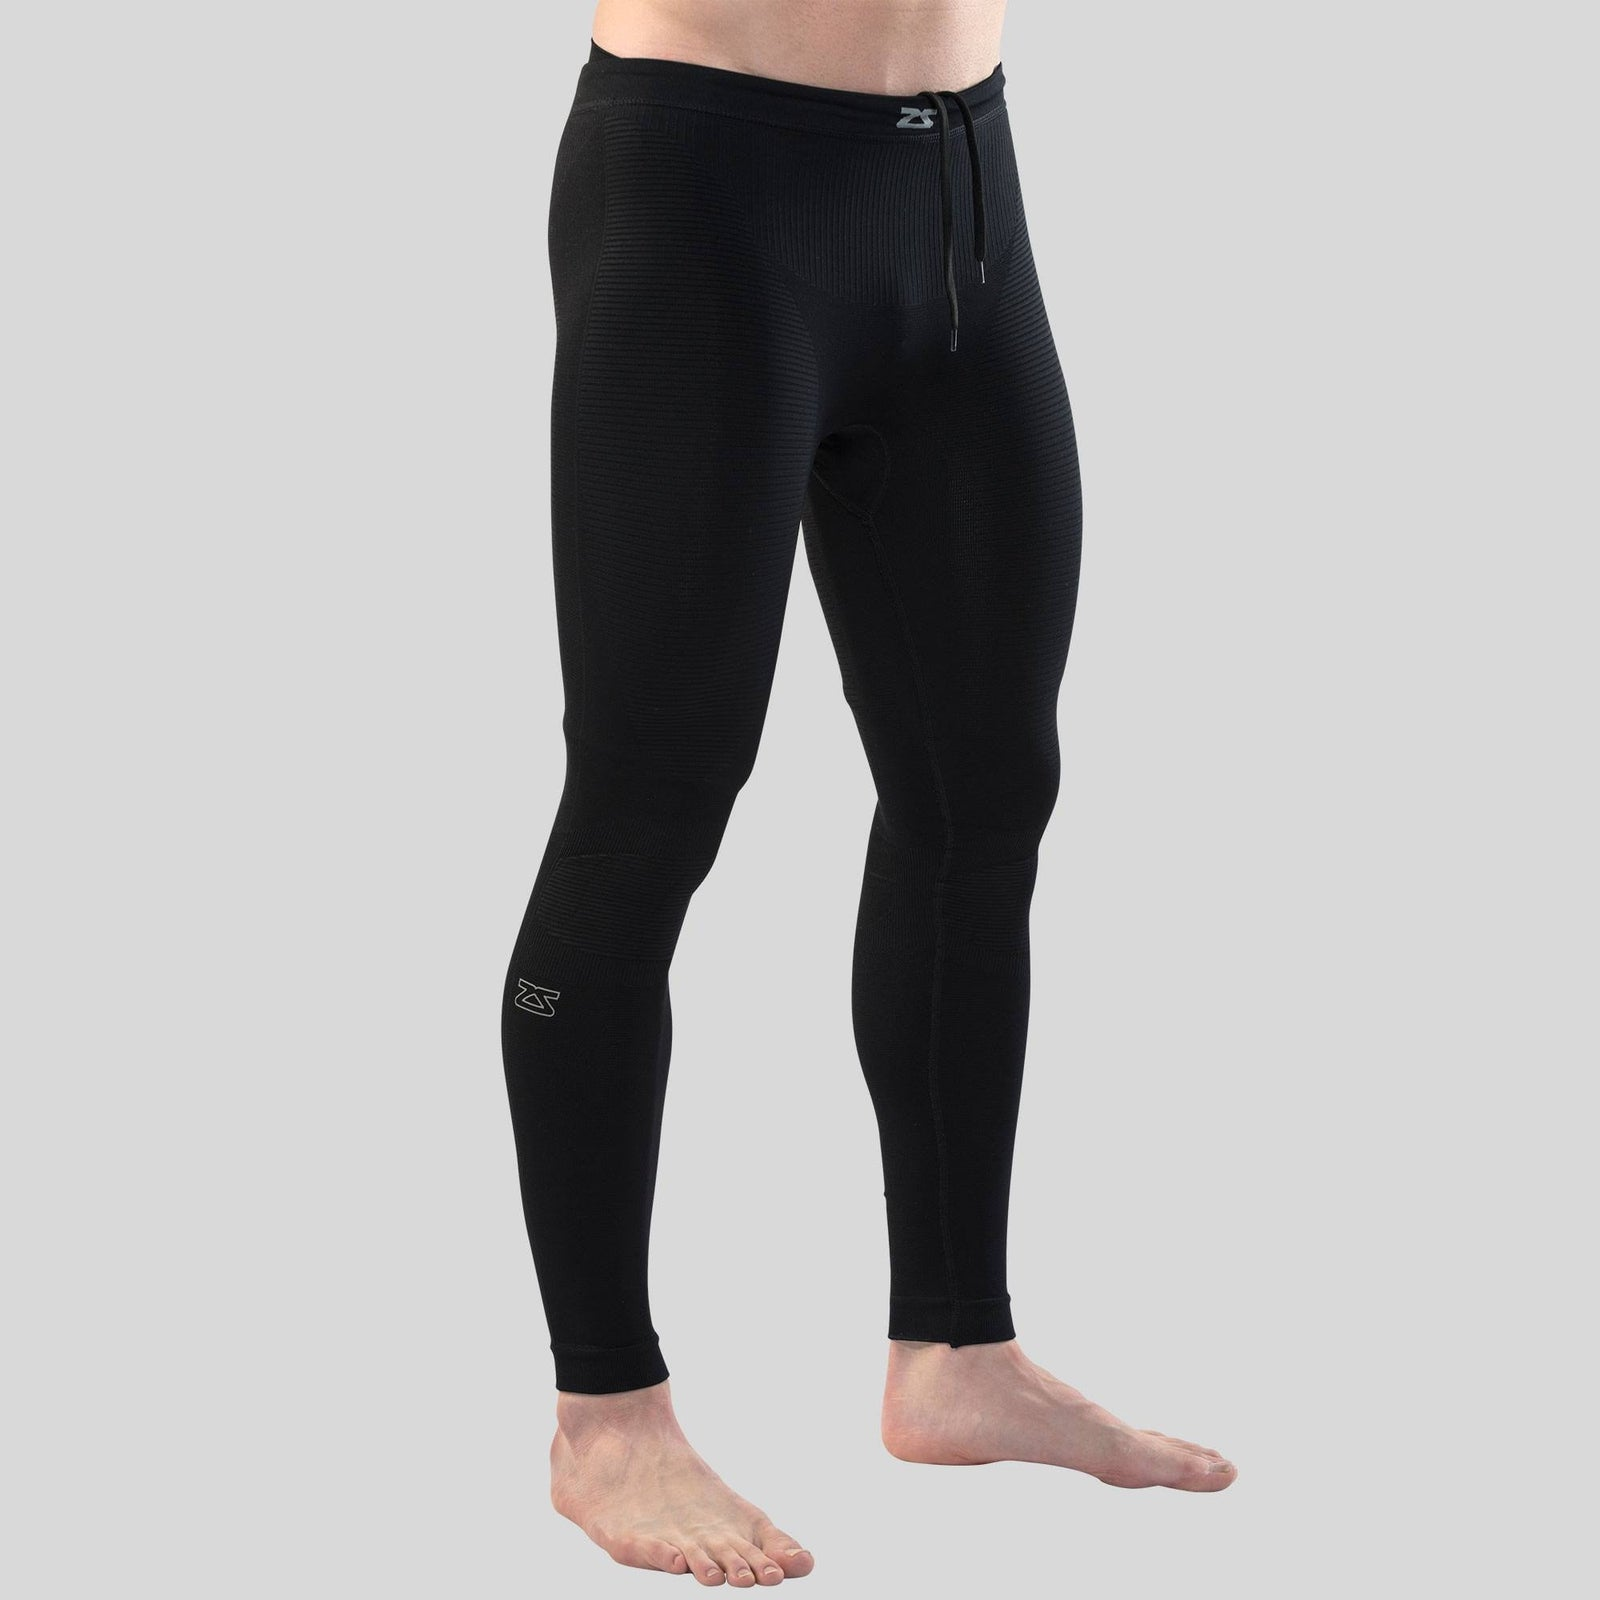 20f68fd36344d Men's Compression Tights and Shorts | Zensah